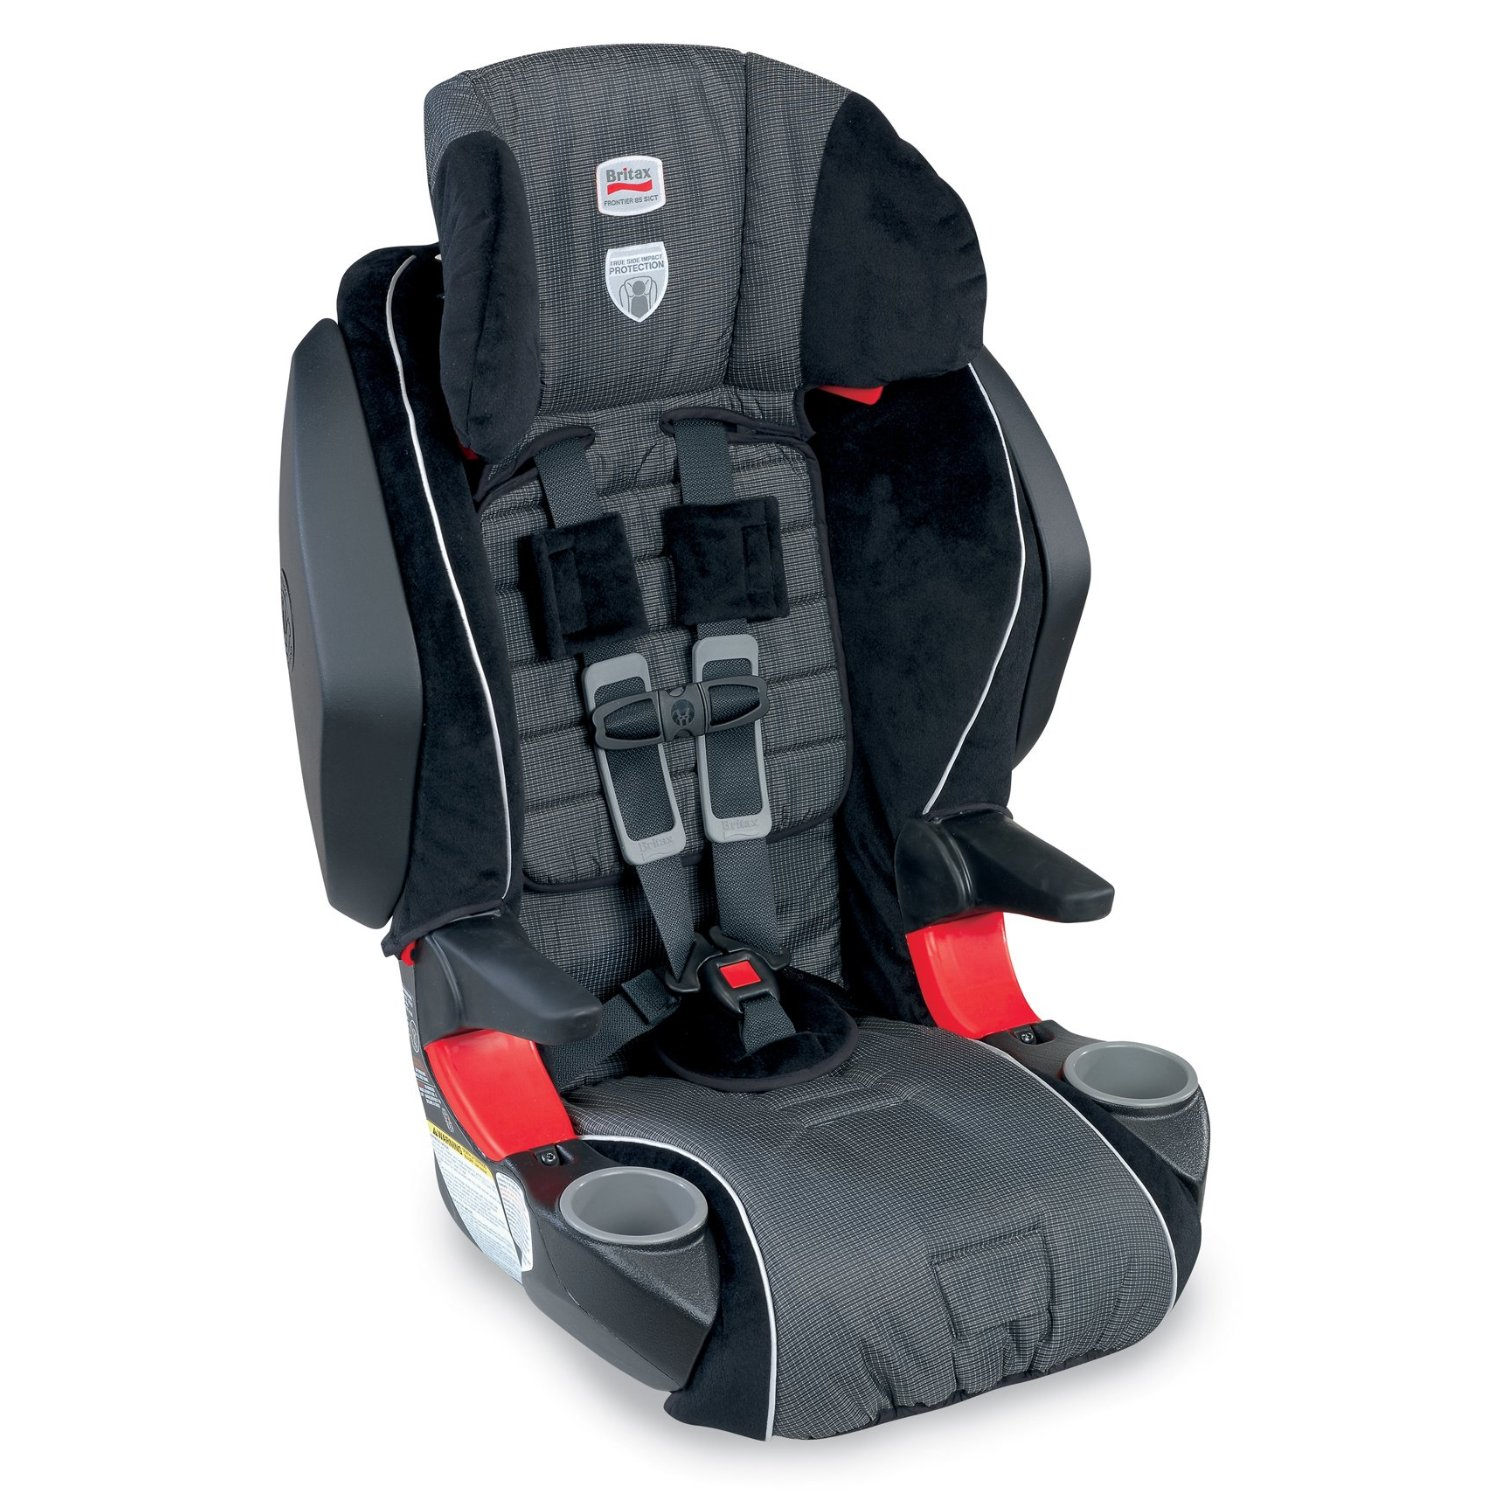 britax frontier 85 sict booster car seat review giveaway rv ends 4 27 us can. Black Bedroom Furniture Sets. Home Design Ideas